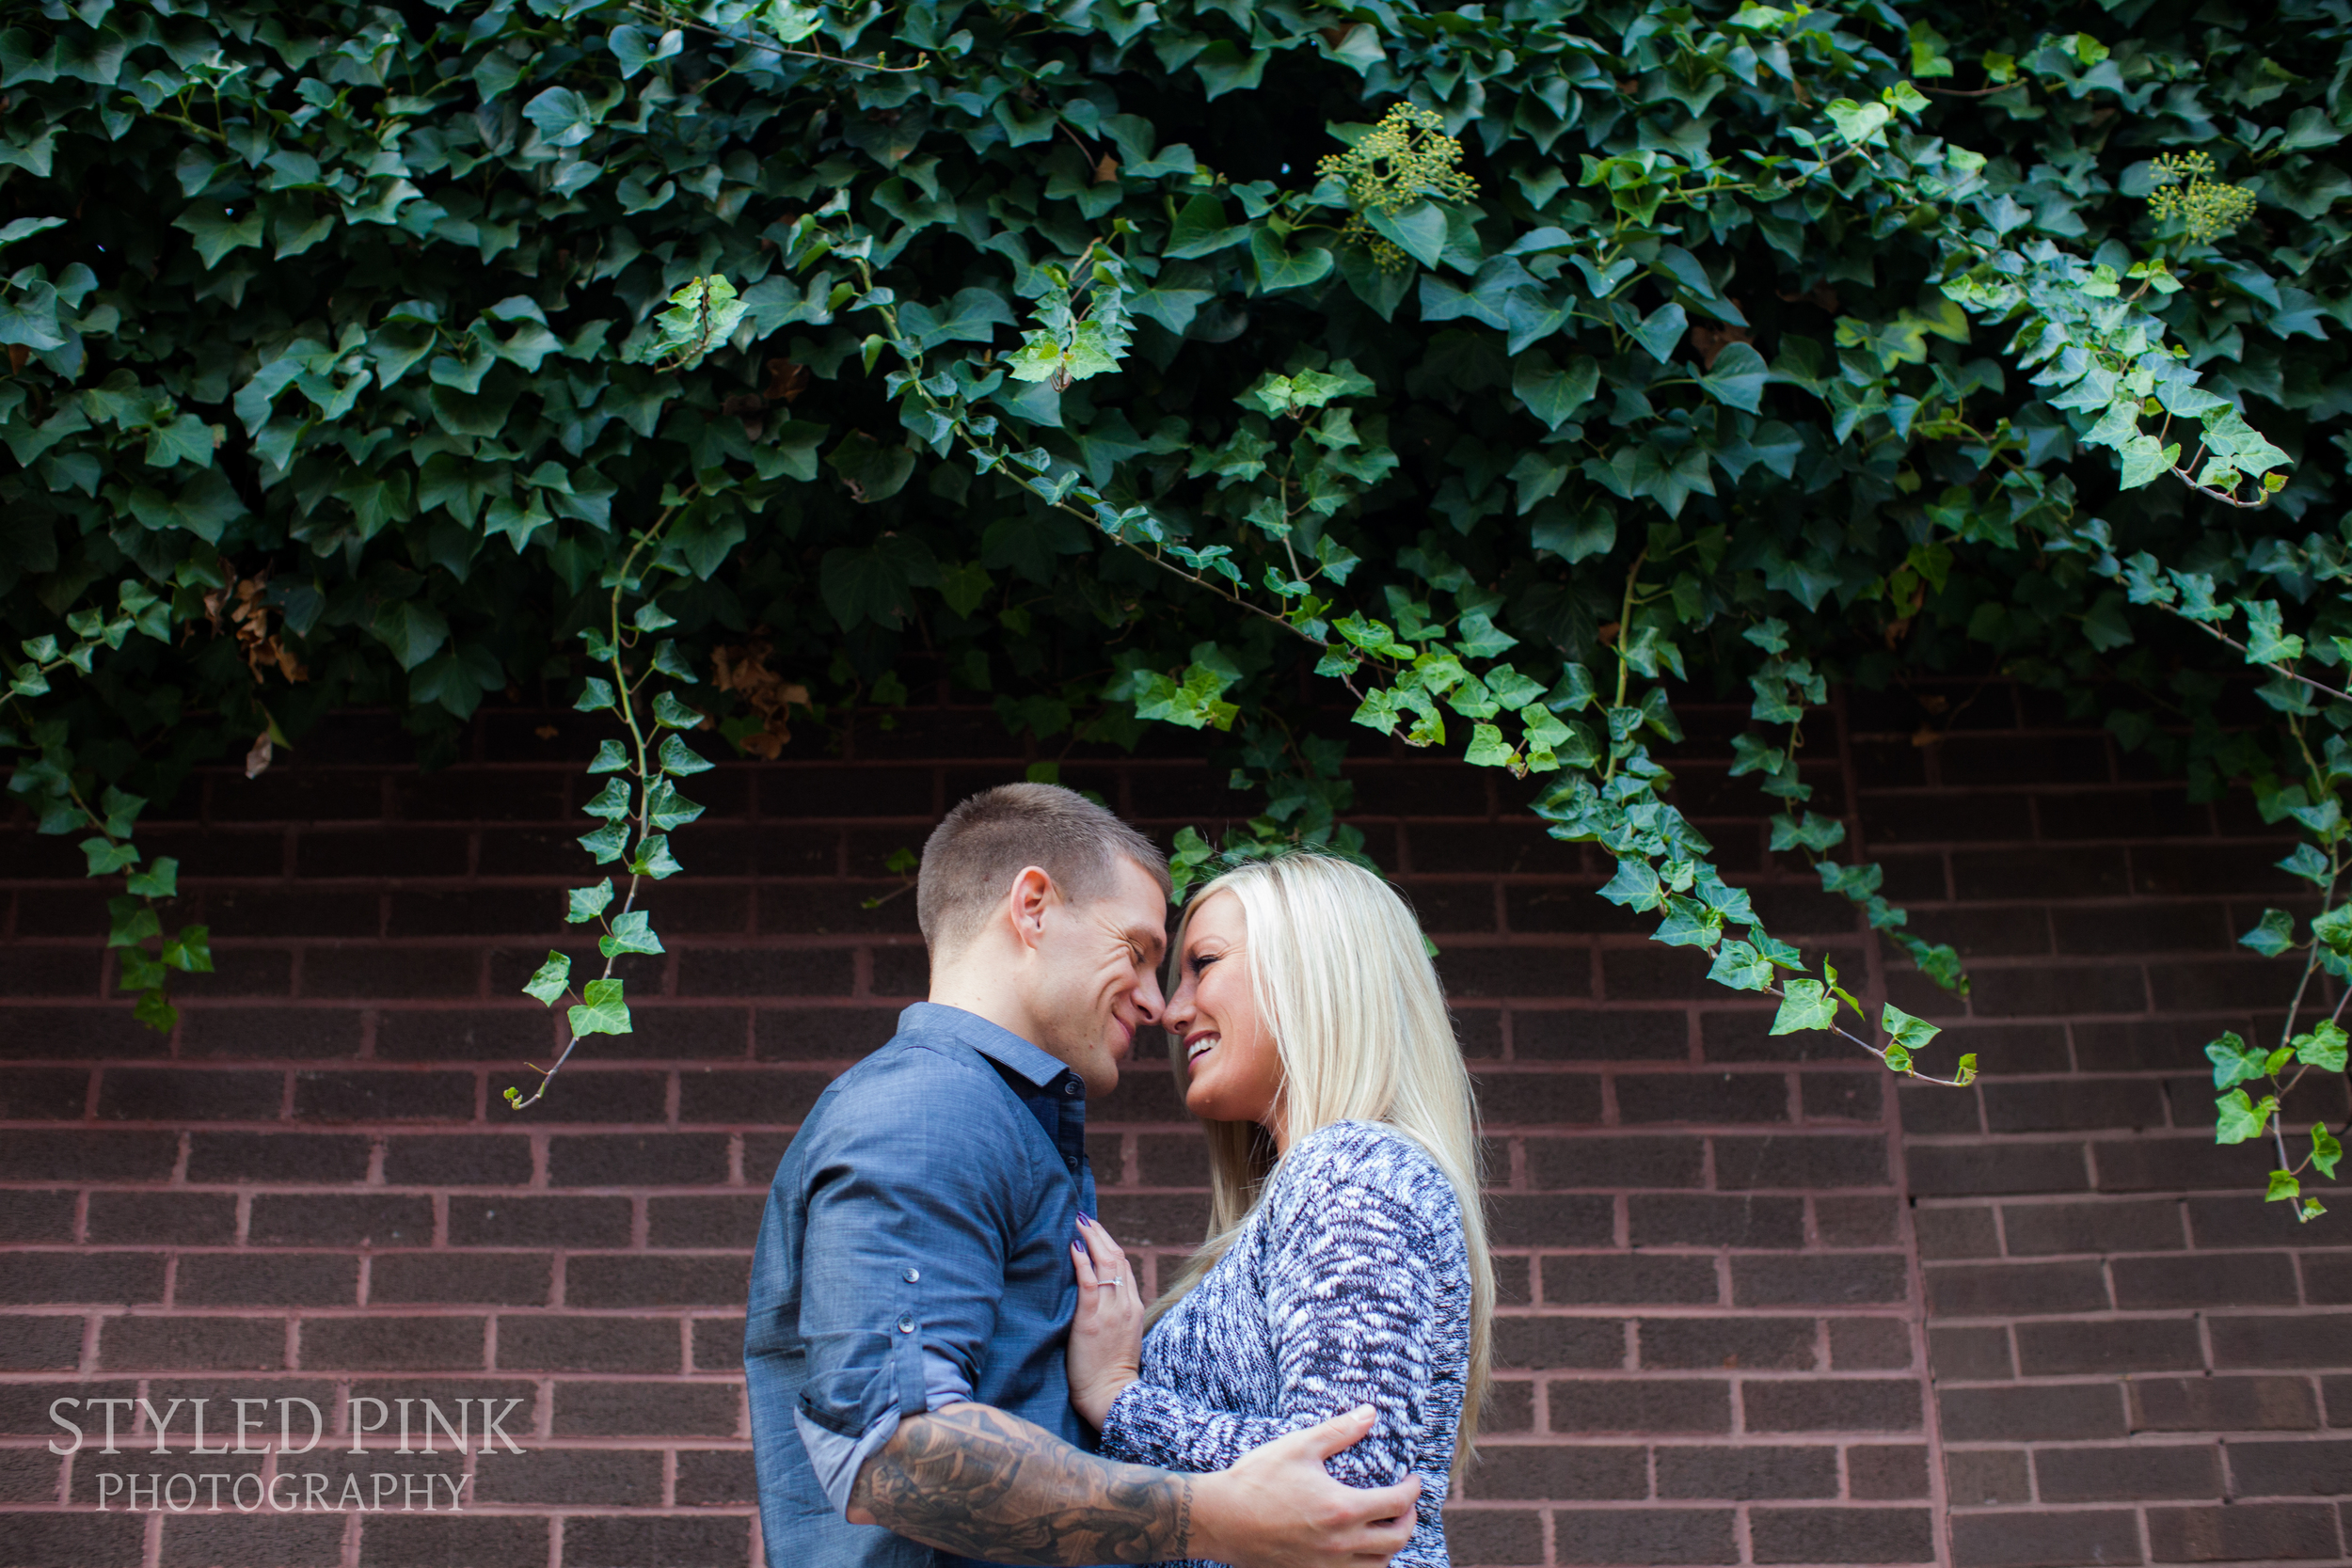 styled-pink-photography-penns-landing-engagement-4